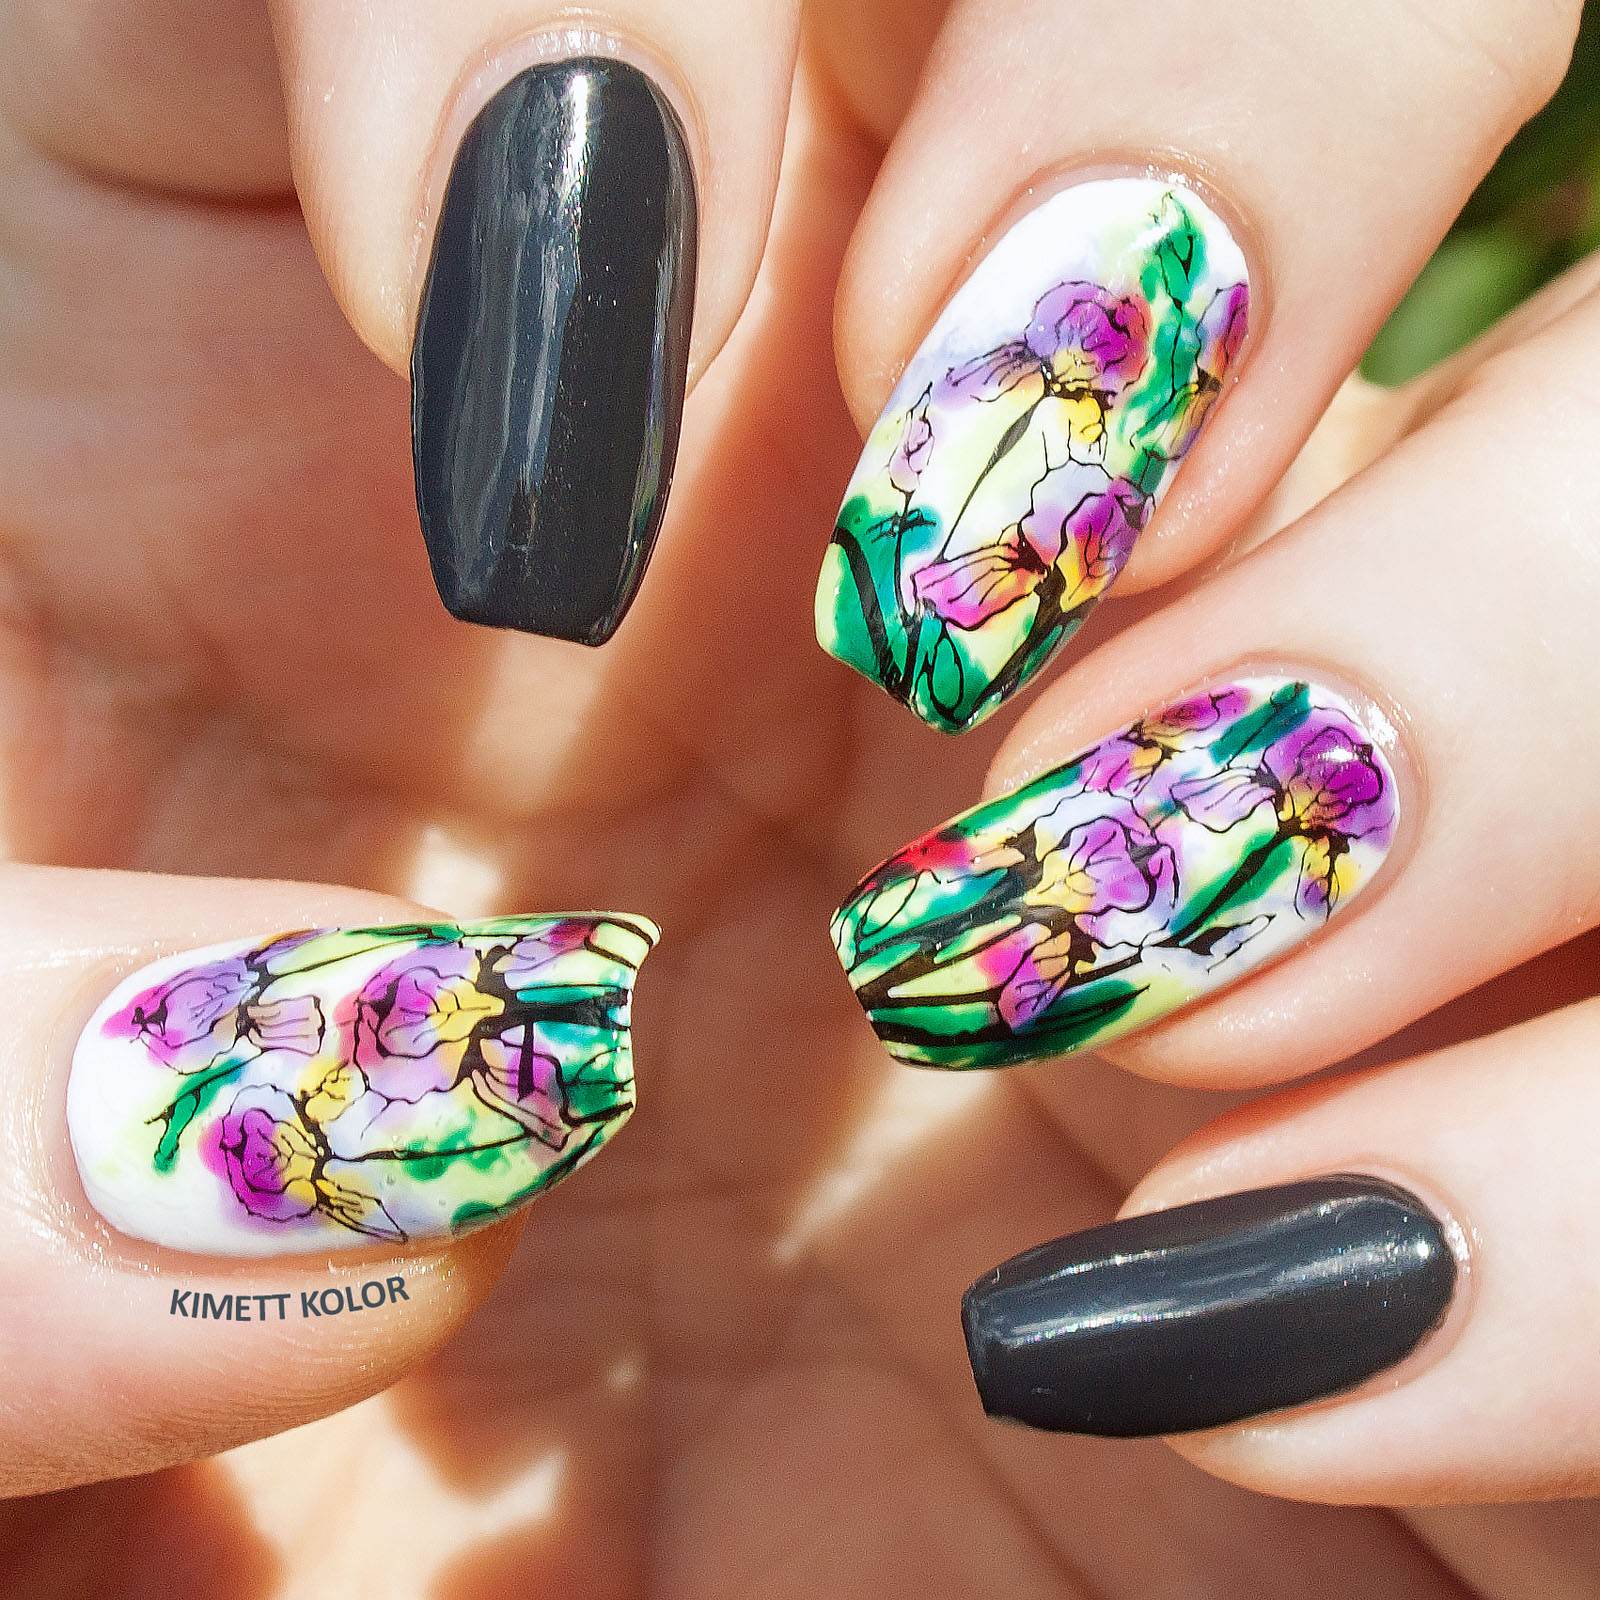 Kimett Kolor Lead Lighting Nail Art with Iris